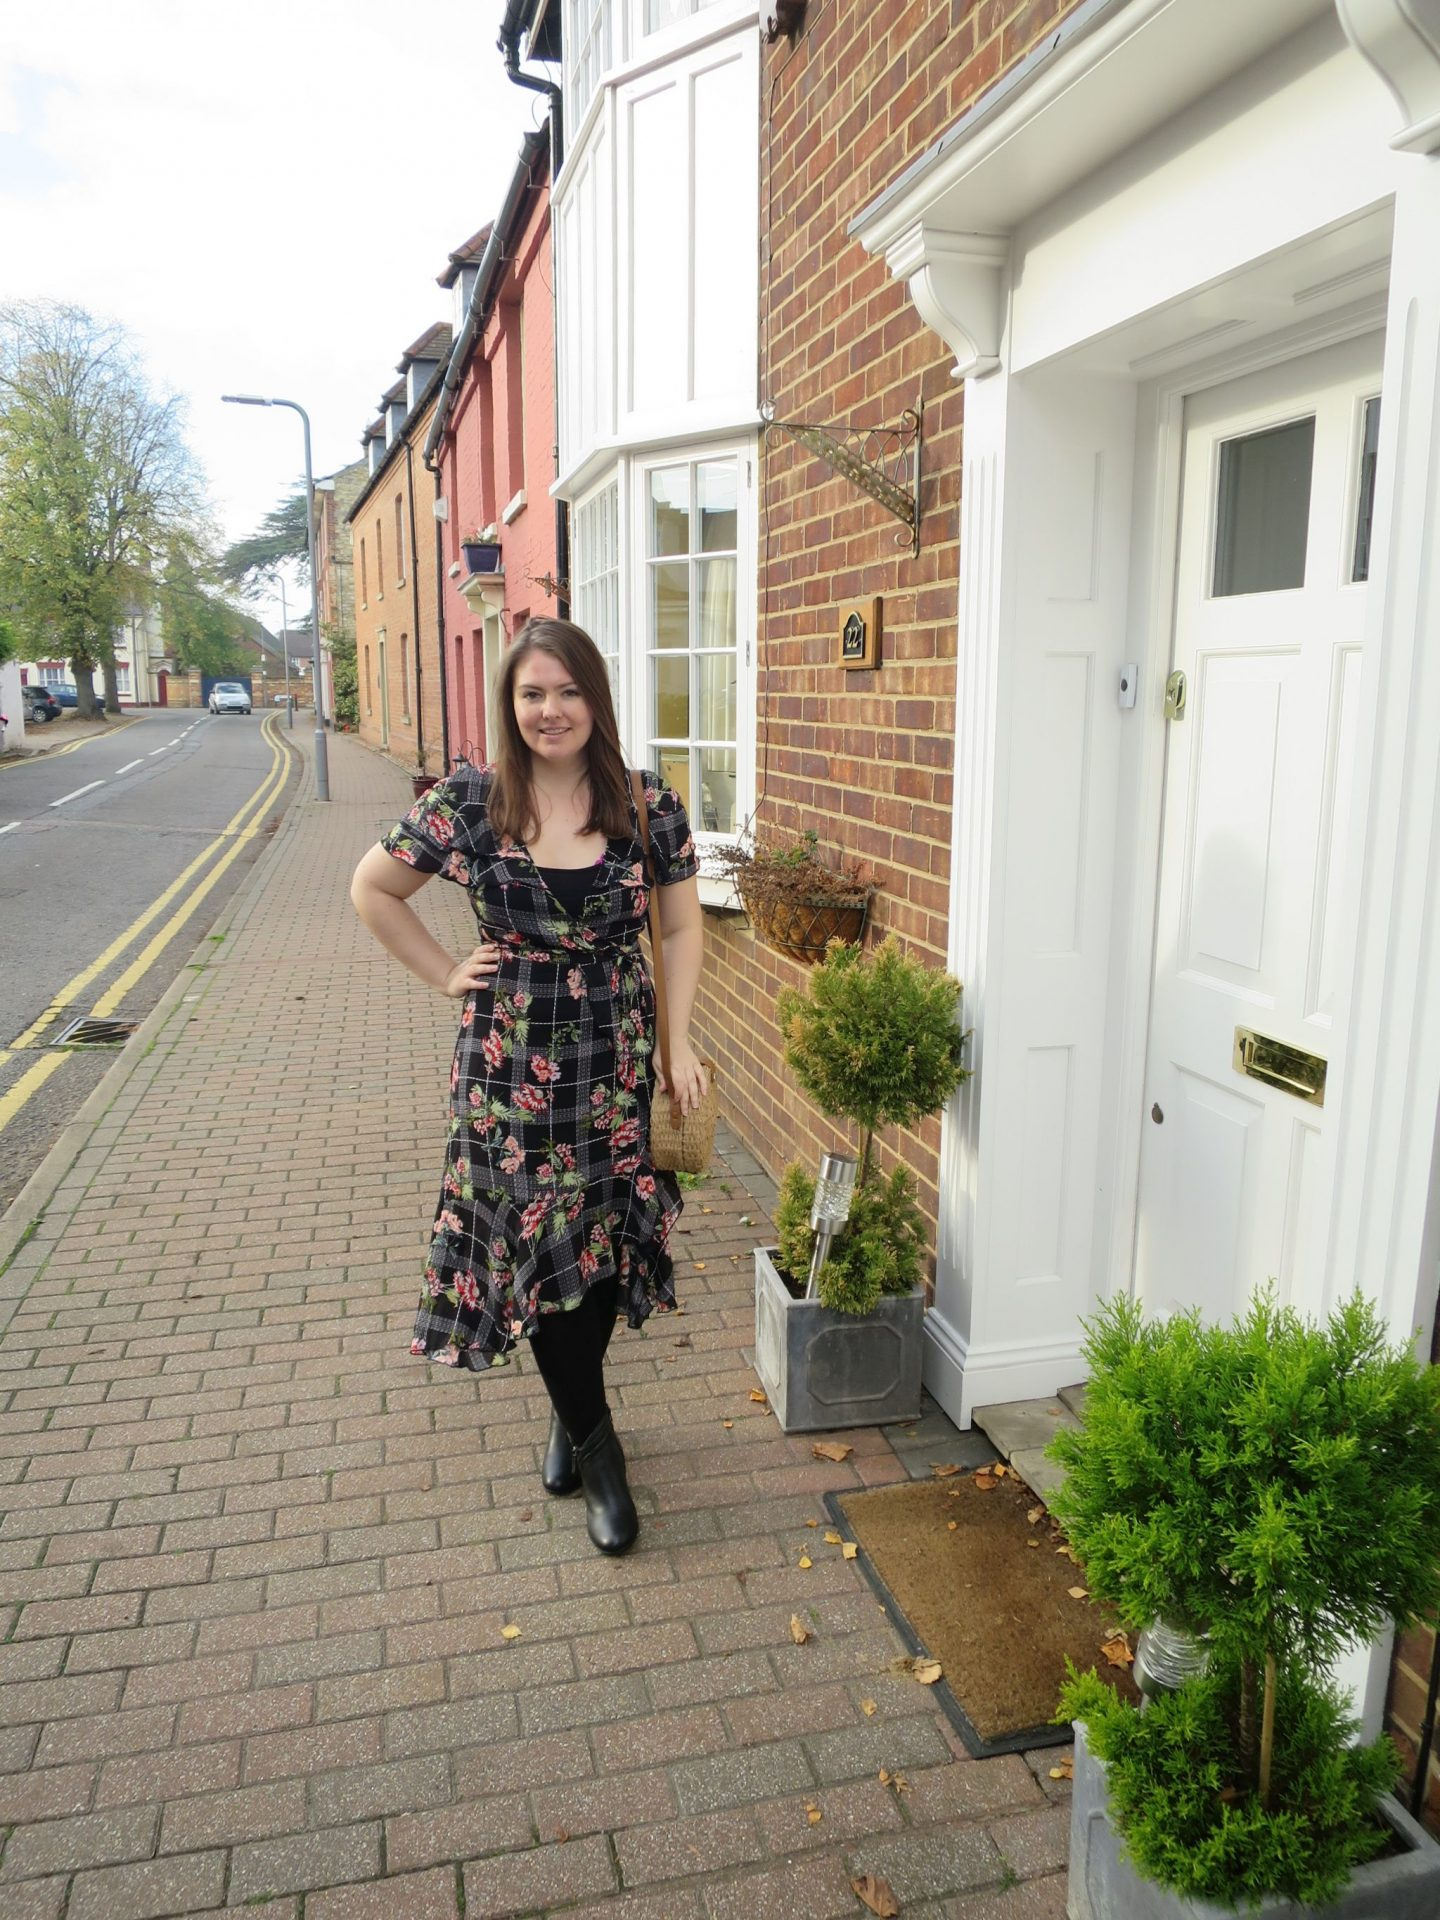 Wearing a floral and check Boohoo dress on a street in Stony Stratford